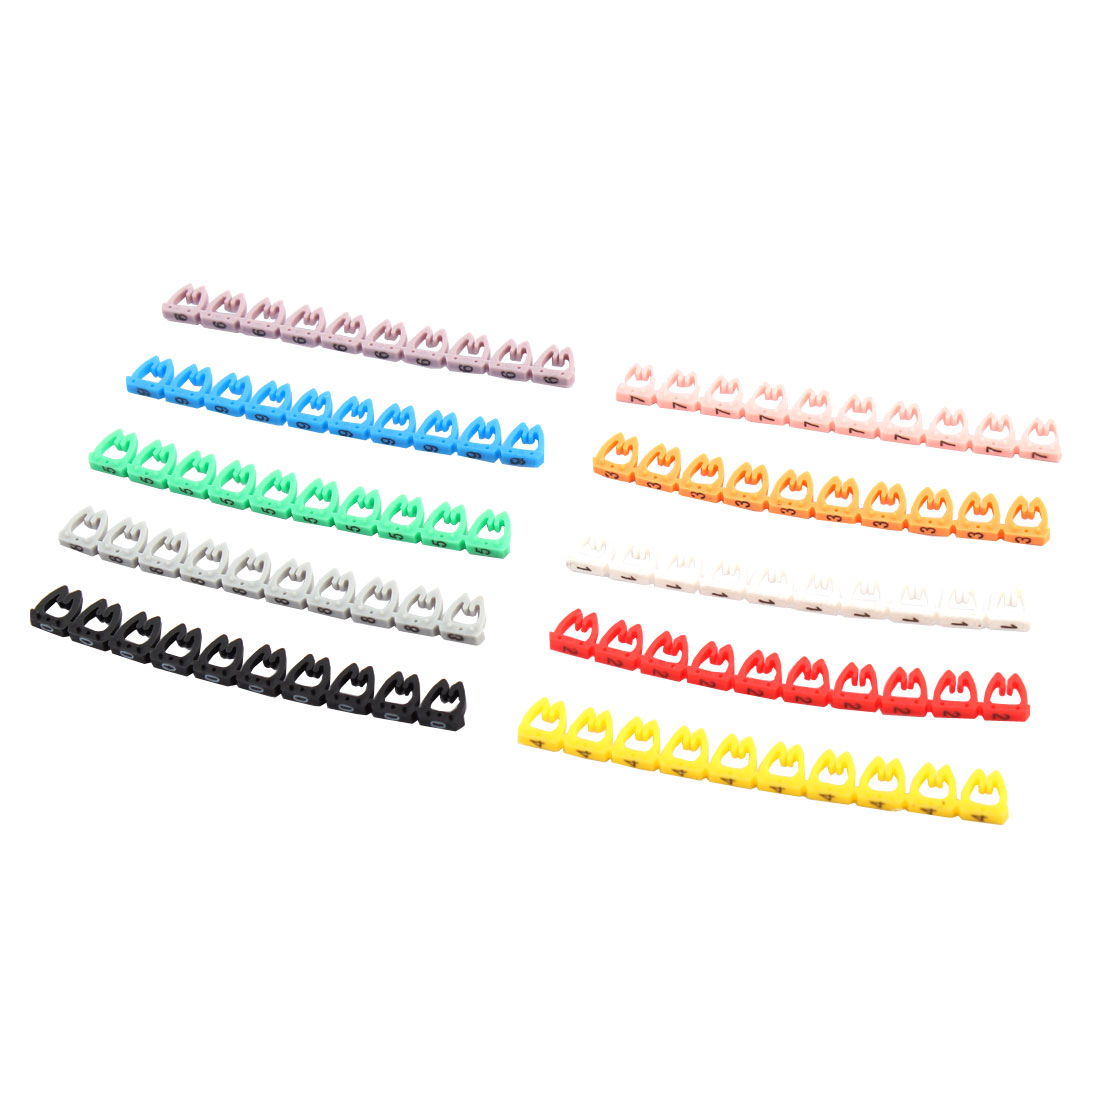 4-6mm Wire Dia. Colorful Wire Organiser Management Markers 10 Pcs